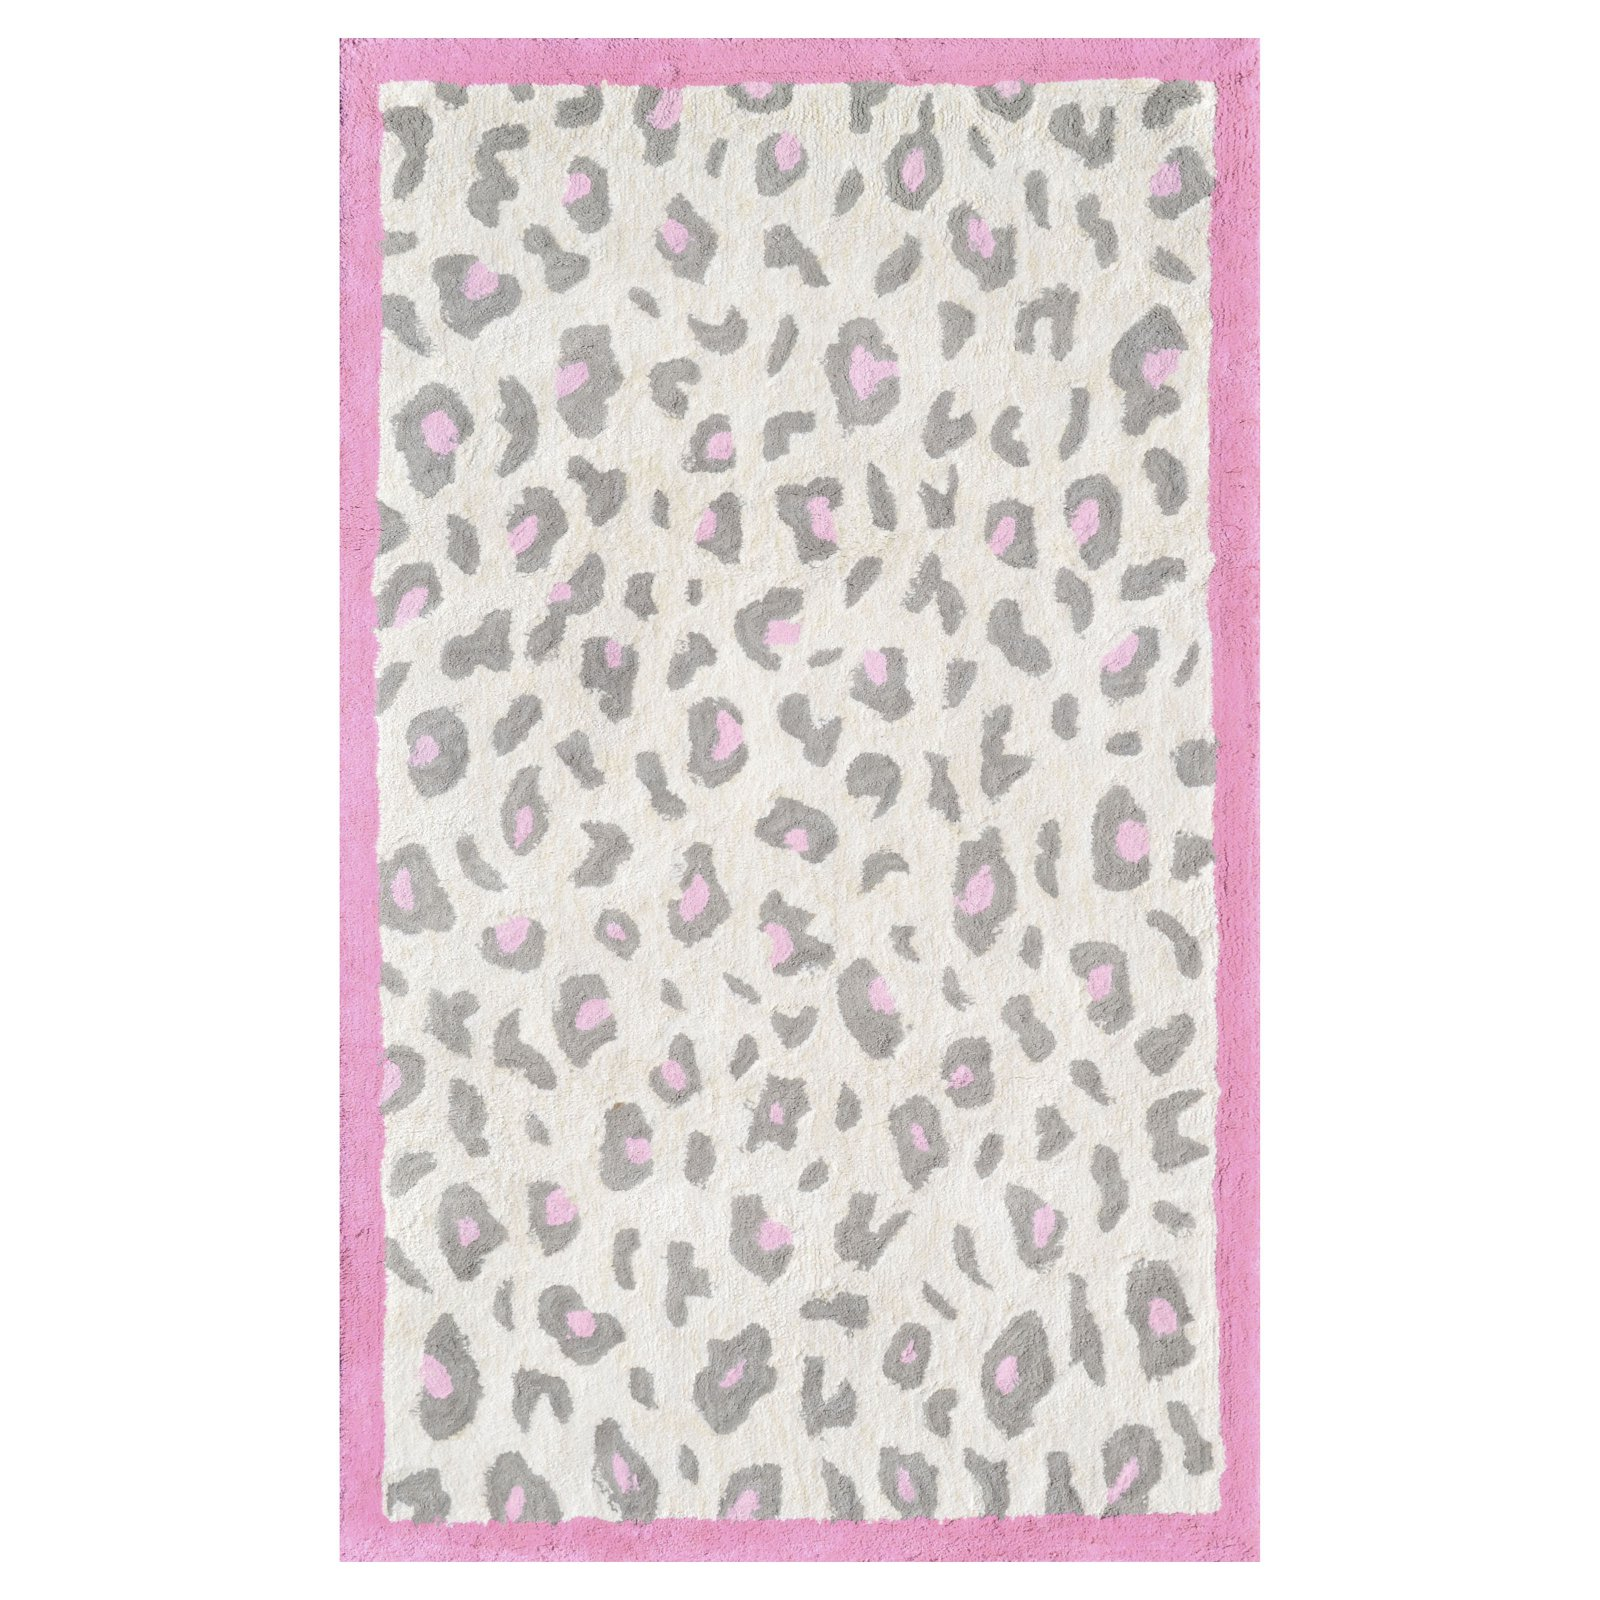 The Rug Market Cheatico Pink Area Rug, Size 2.8' x 4.8'